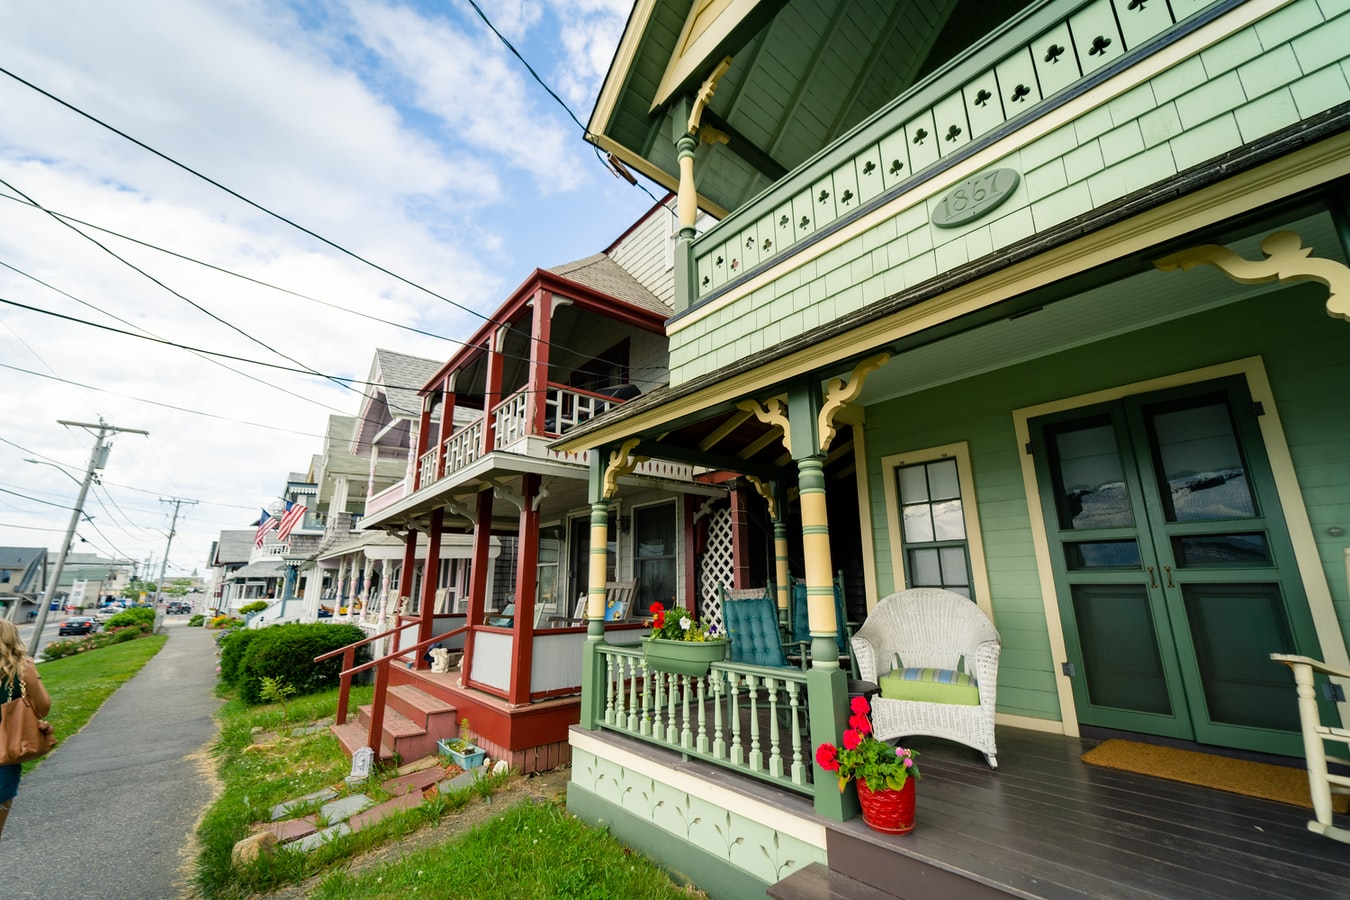 Colorful cottages in Martha's Vineyard, MA